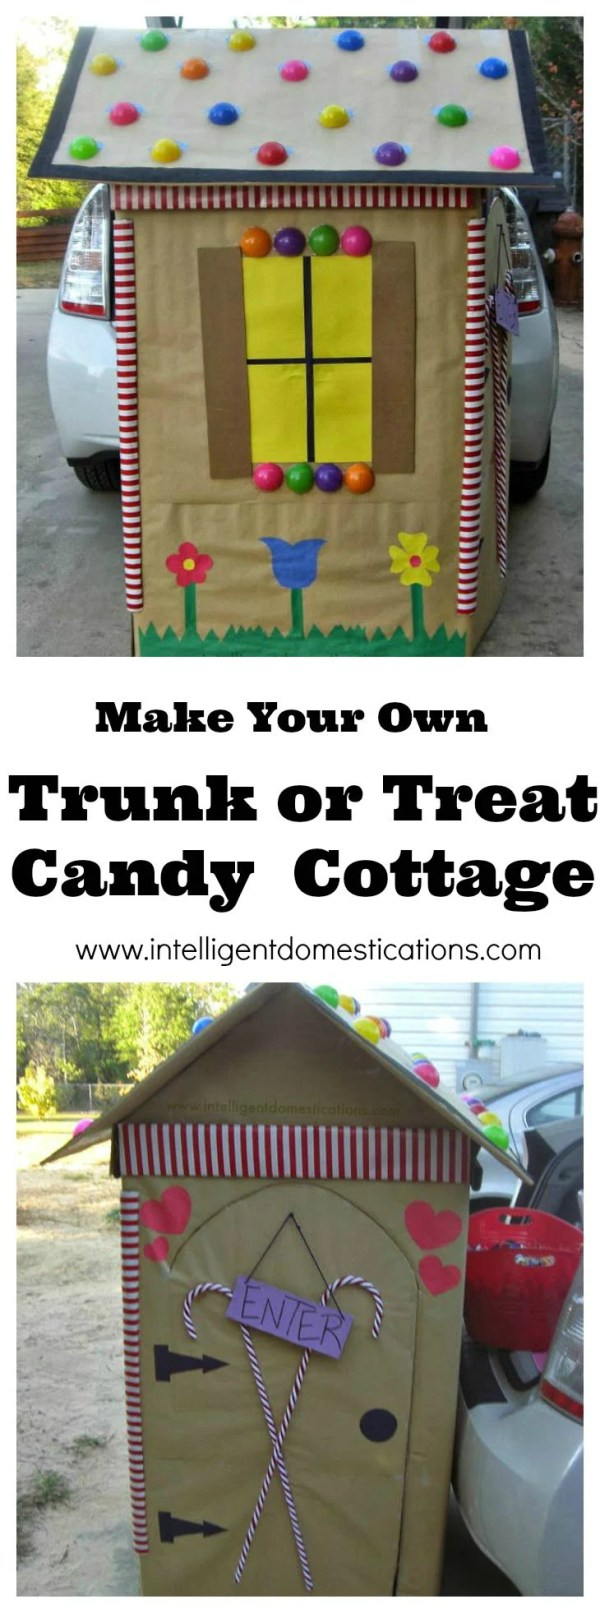 How to make your own Trunk or Treat Candy Cottage. Trunk or Treat design ideas. Trunk or Treat